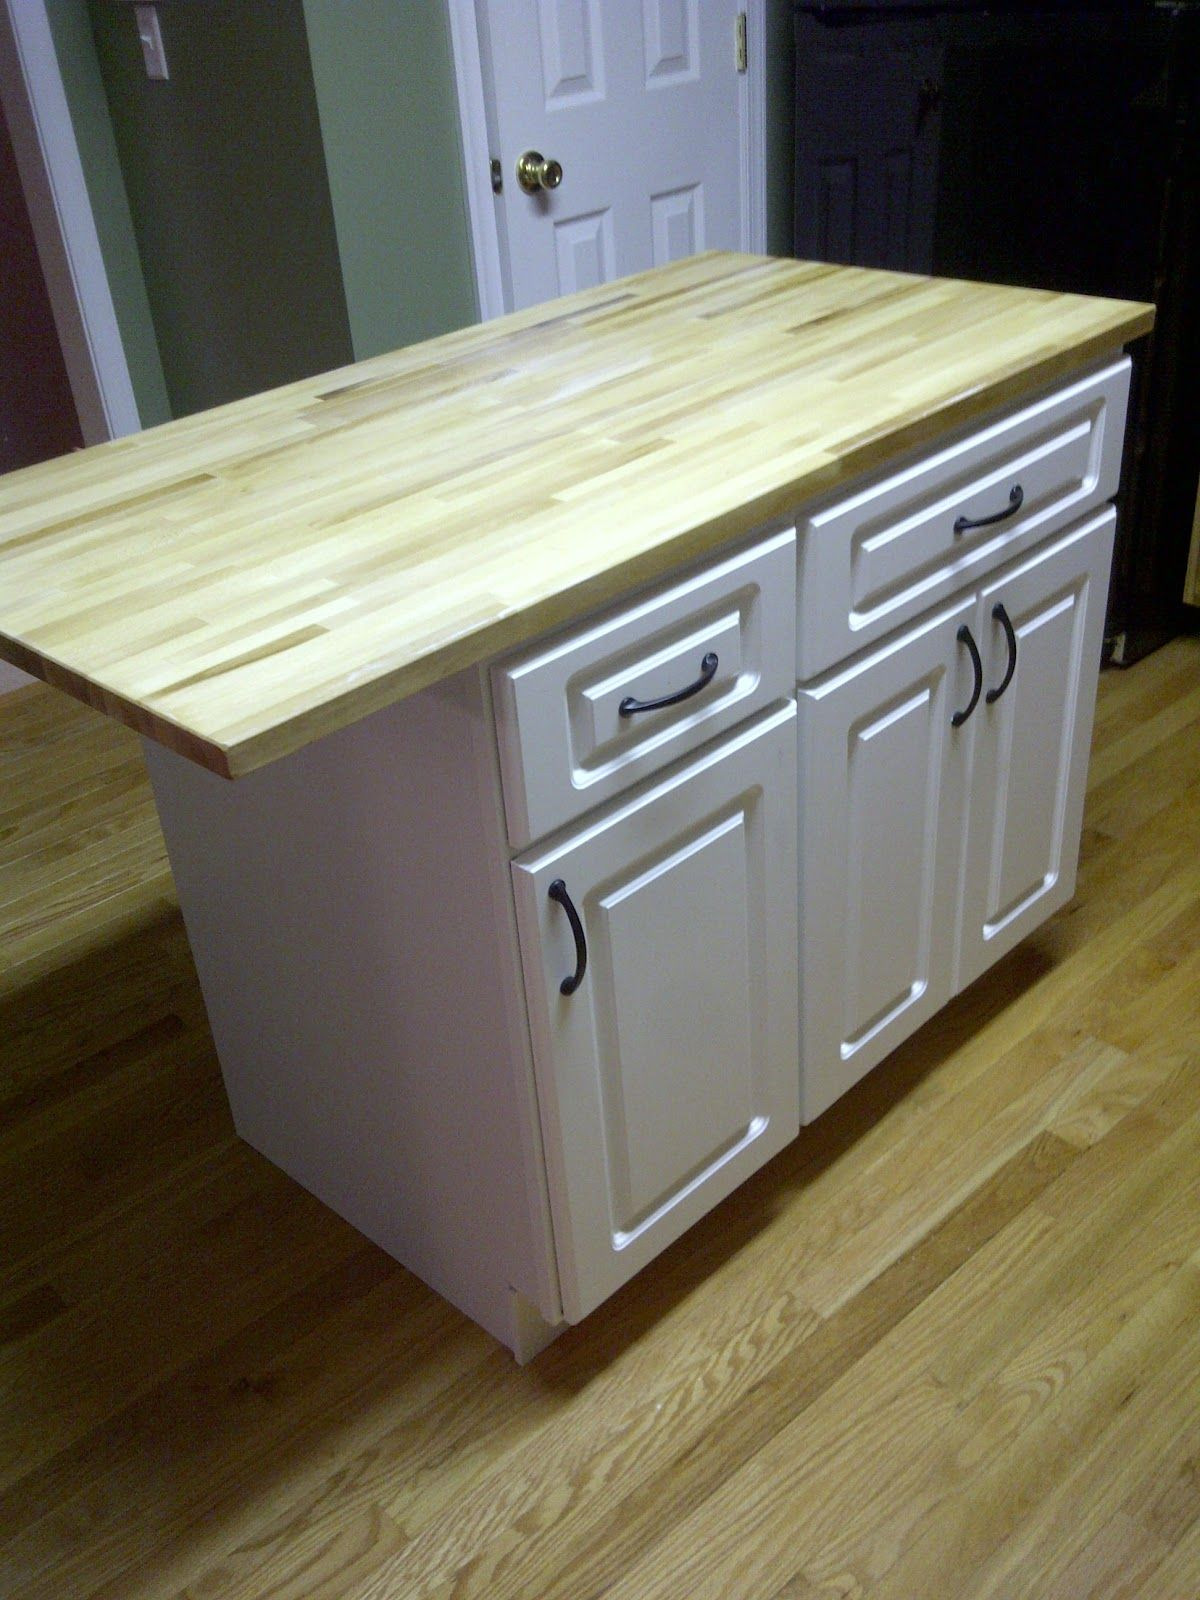 Best Place To Buy Kitchen Island Cabinet Company Diy Cheap Cabinets And A Countertop Easy Put Together If Only My Were Big Enough For An